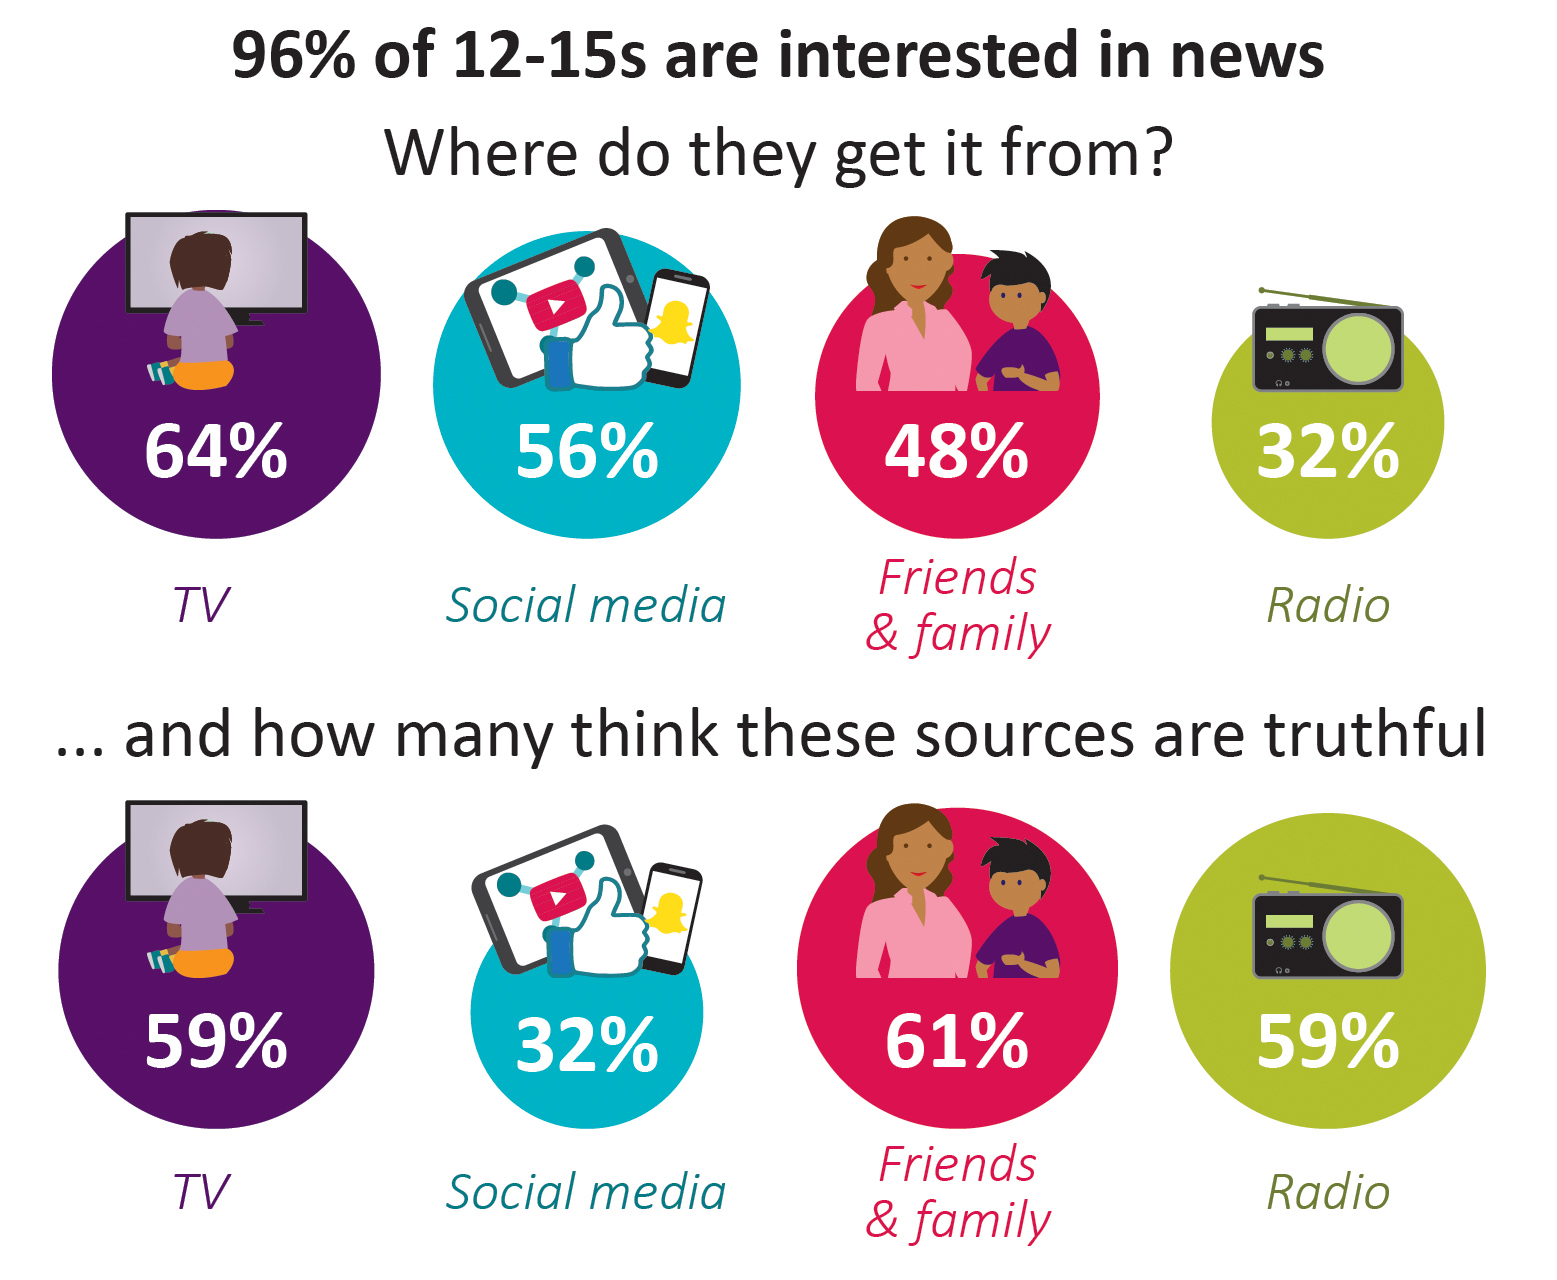 96% of 12-15s are interested in news